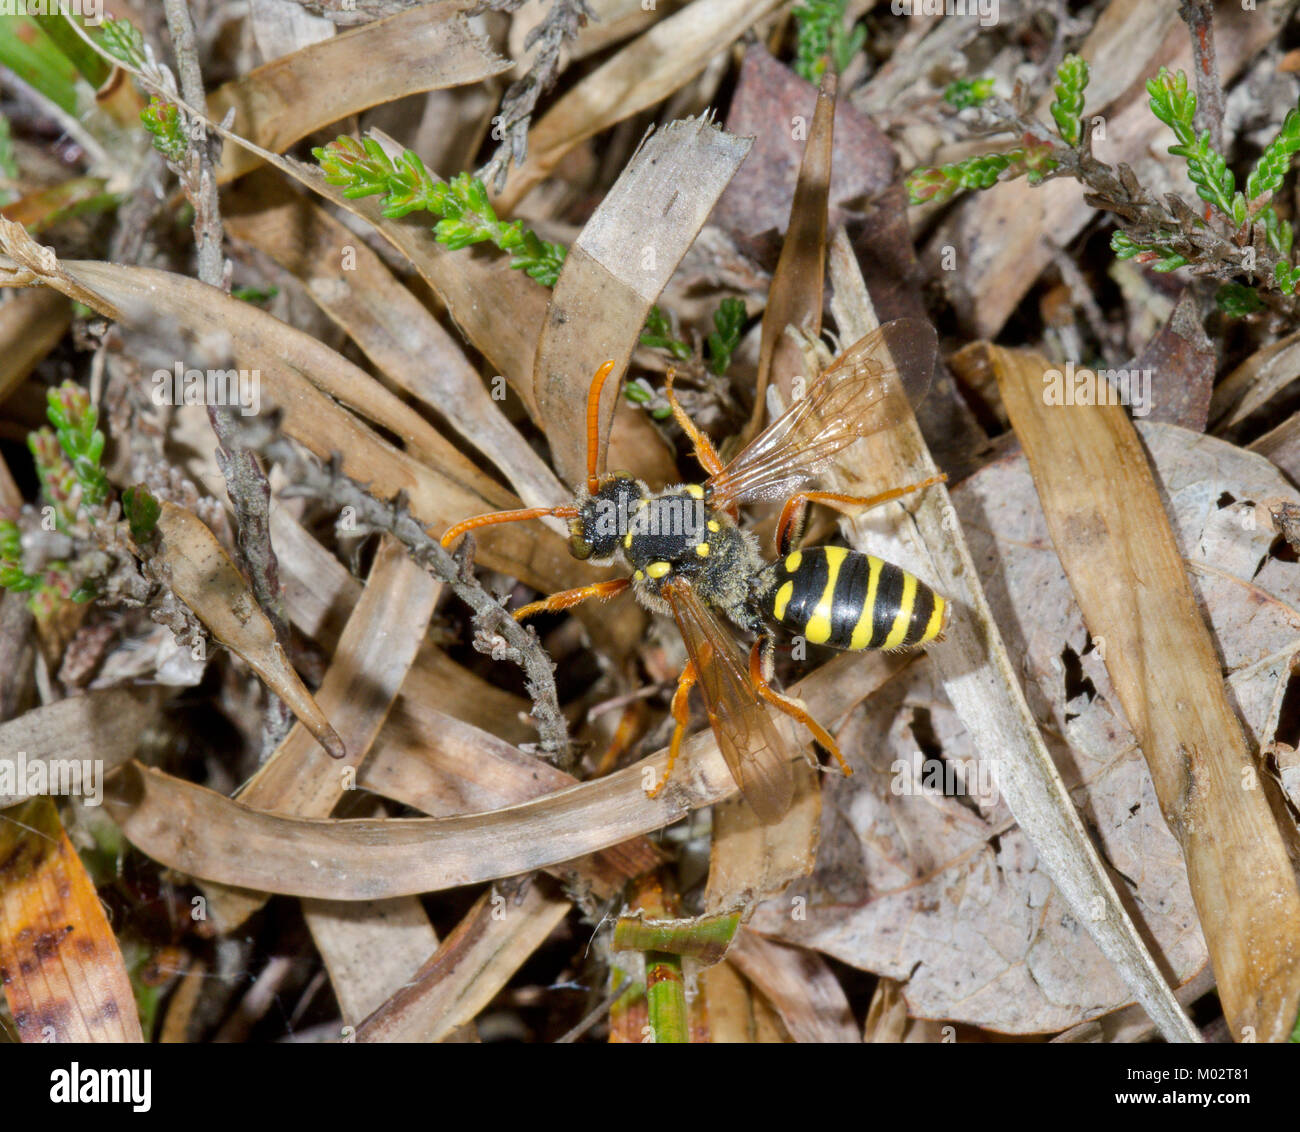 Goodens Nomad Cuckoo Bee (Nomada goodeniana) on heathland in Sussex, UK - Stock Image